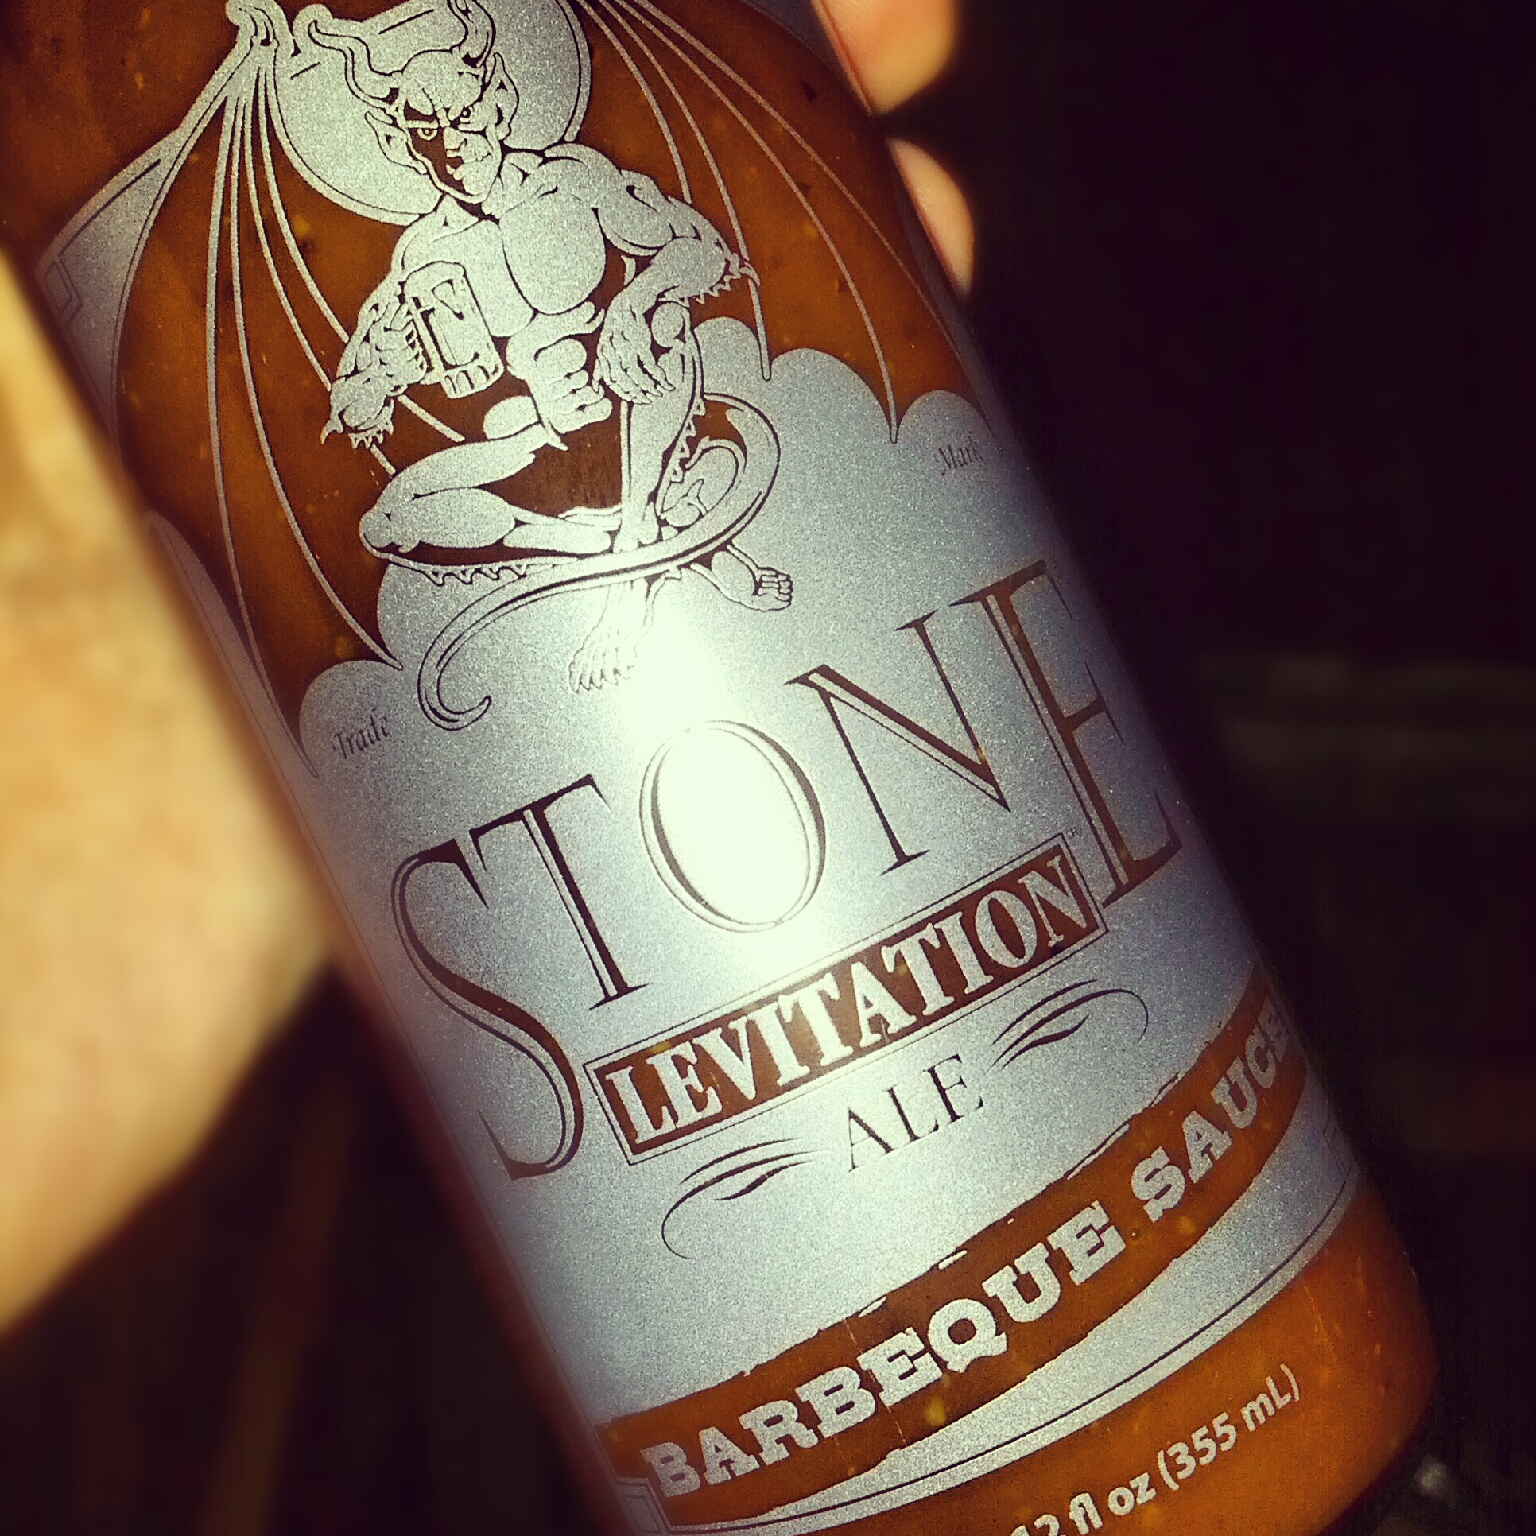 Stone Levitation Beer : Stone levitation ale barbeque sauce is fantastic urban